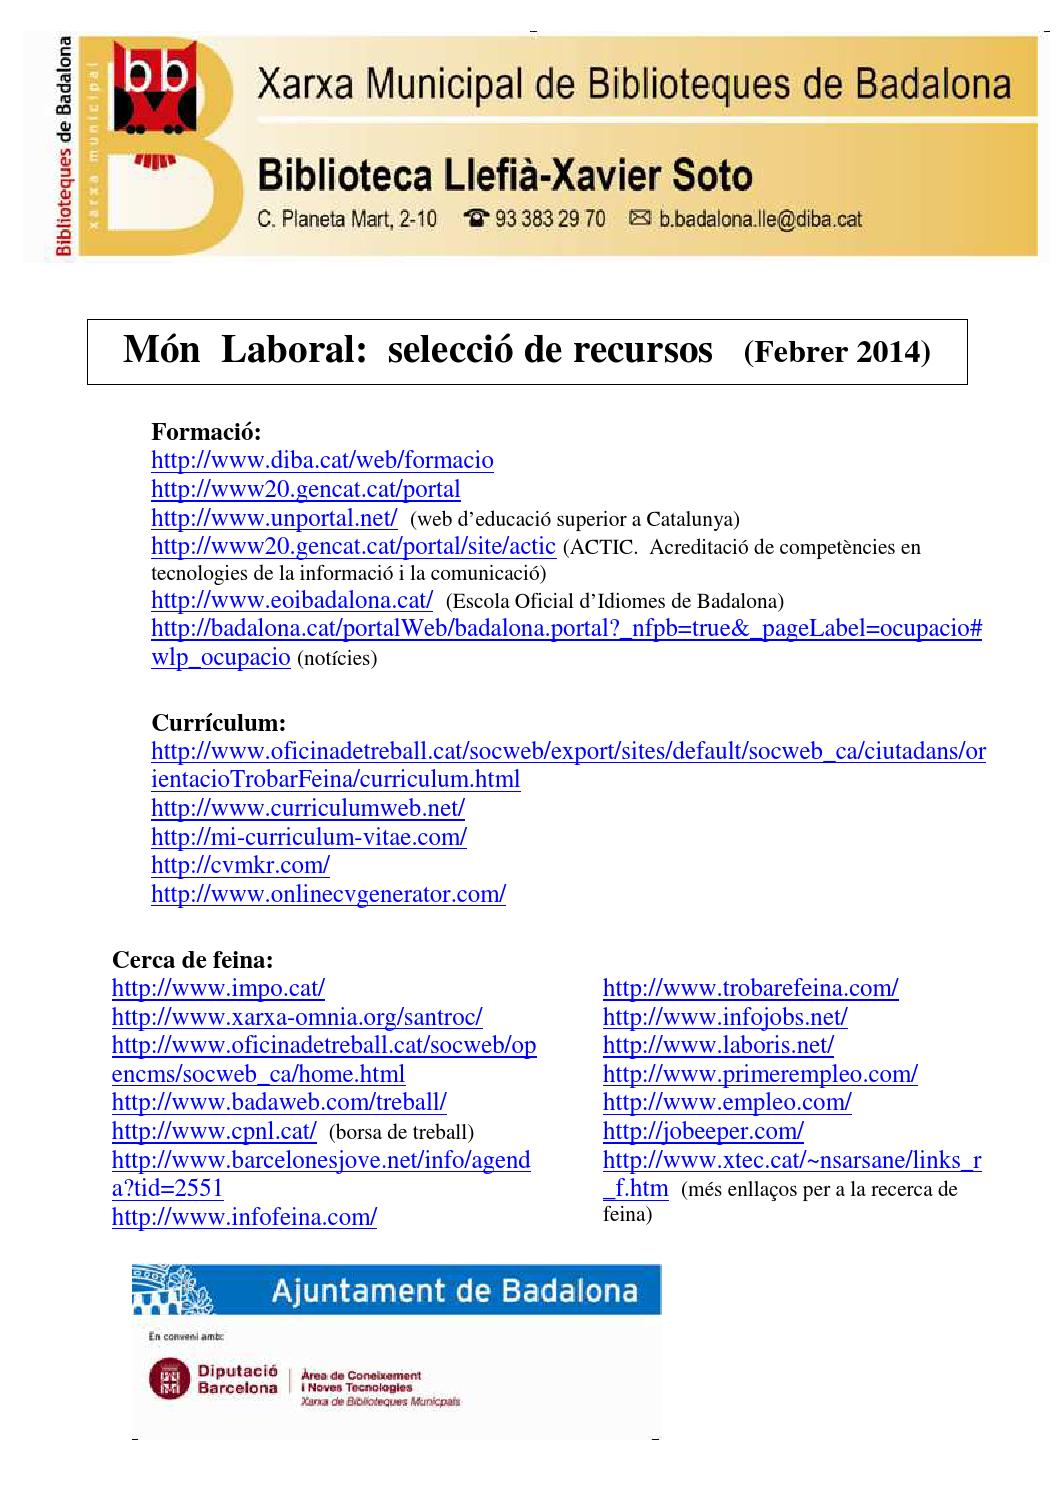 Recursos web m n laboral by biblioteques de badalona issuu for Oficina treball cat